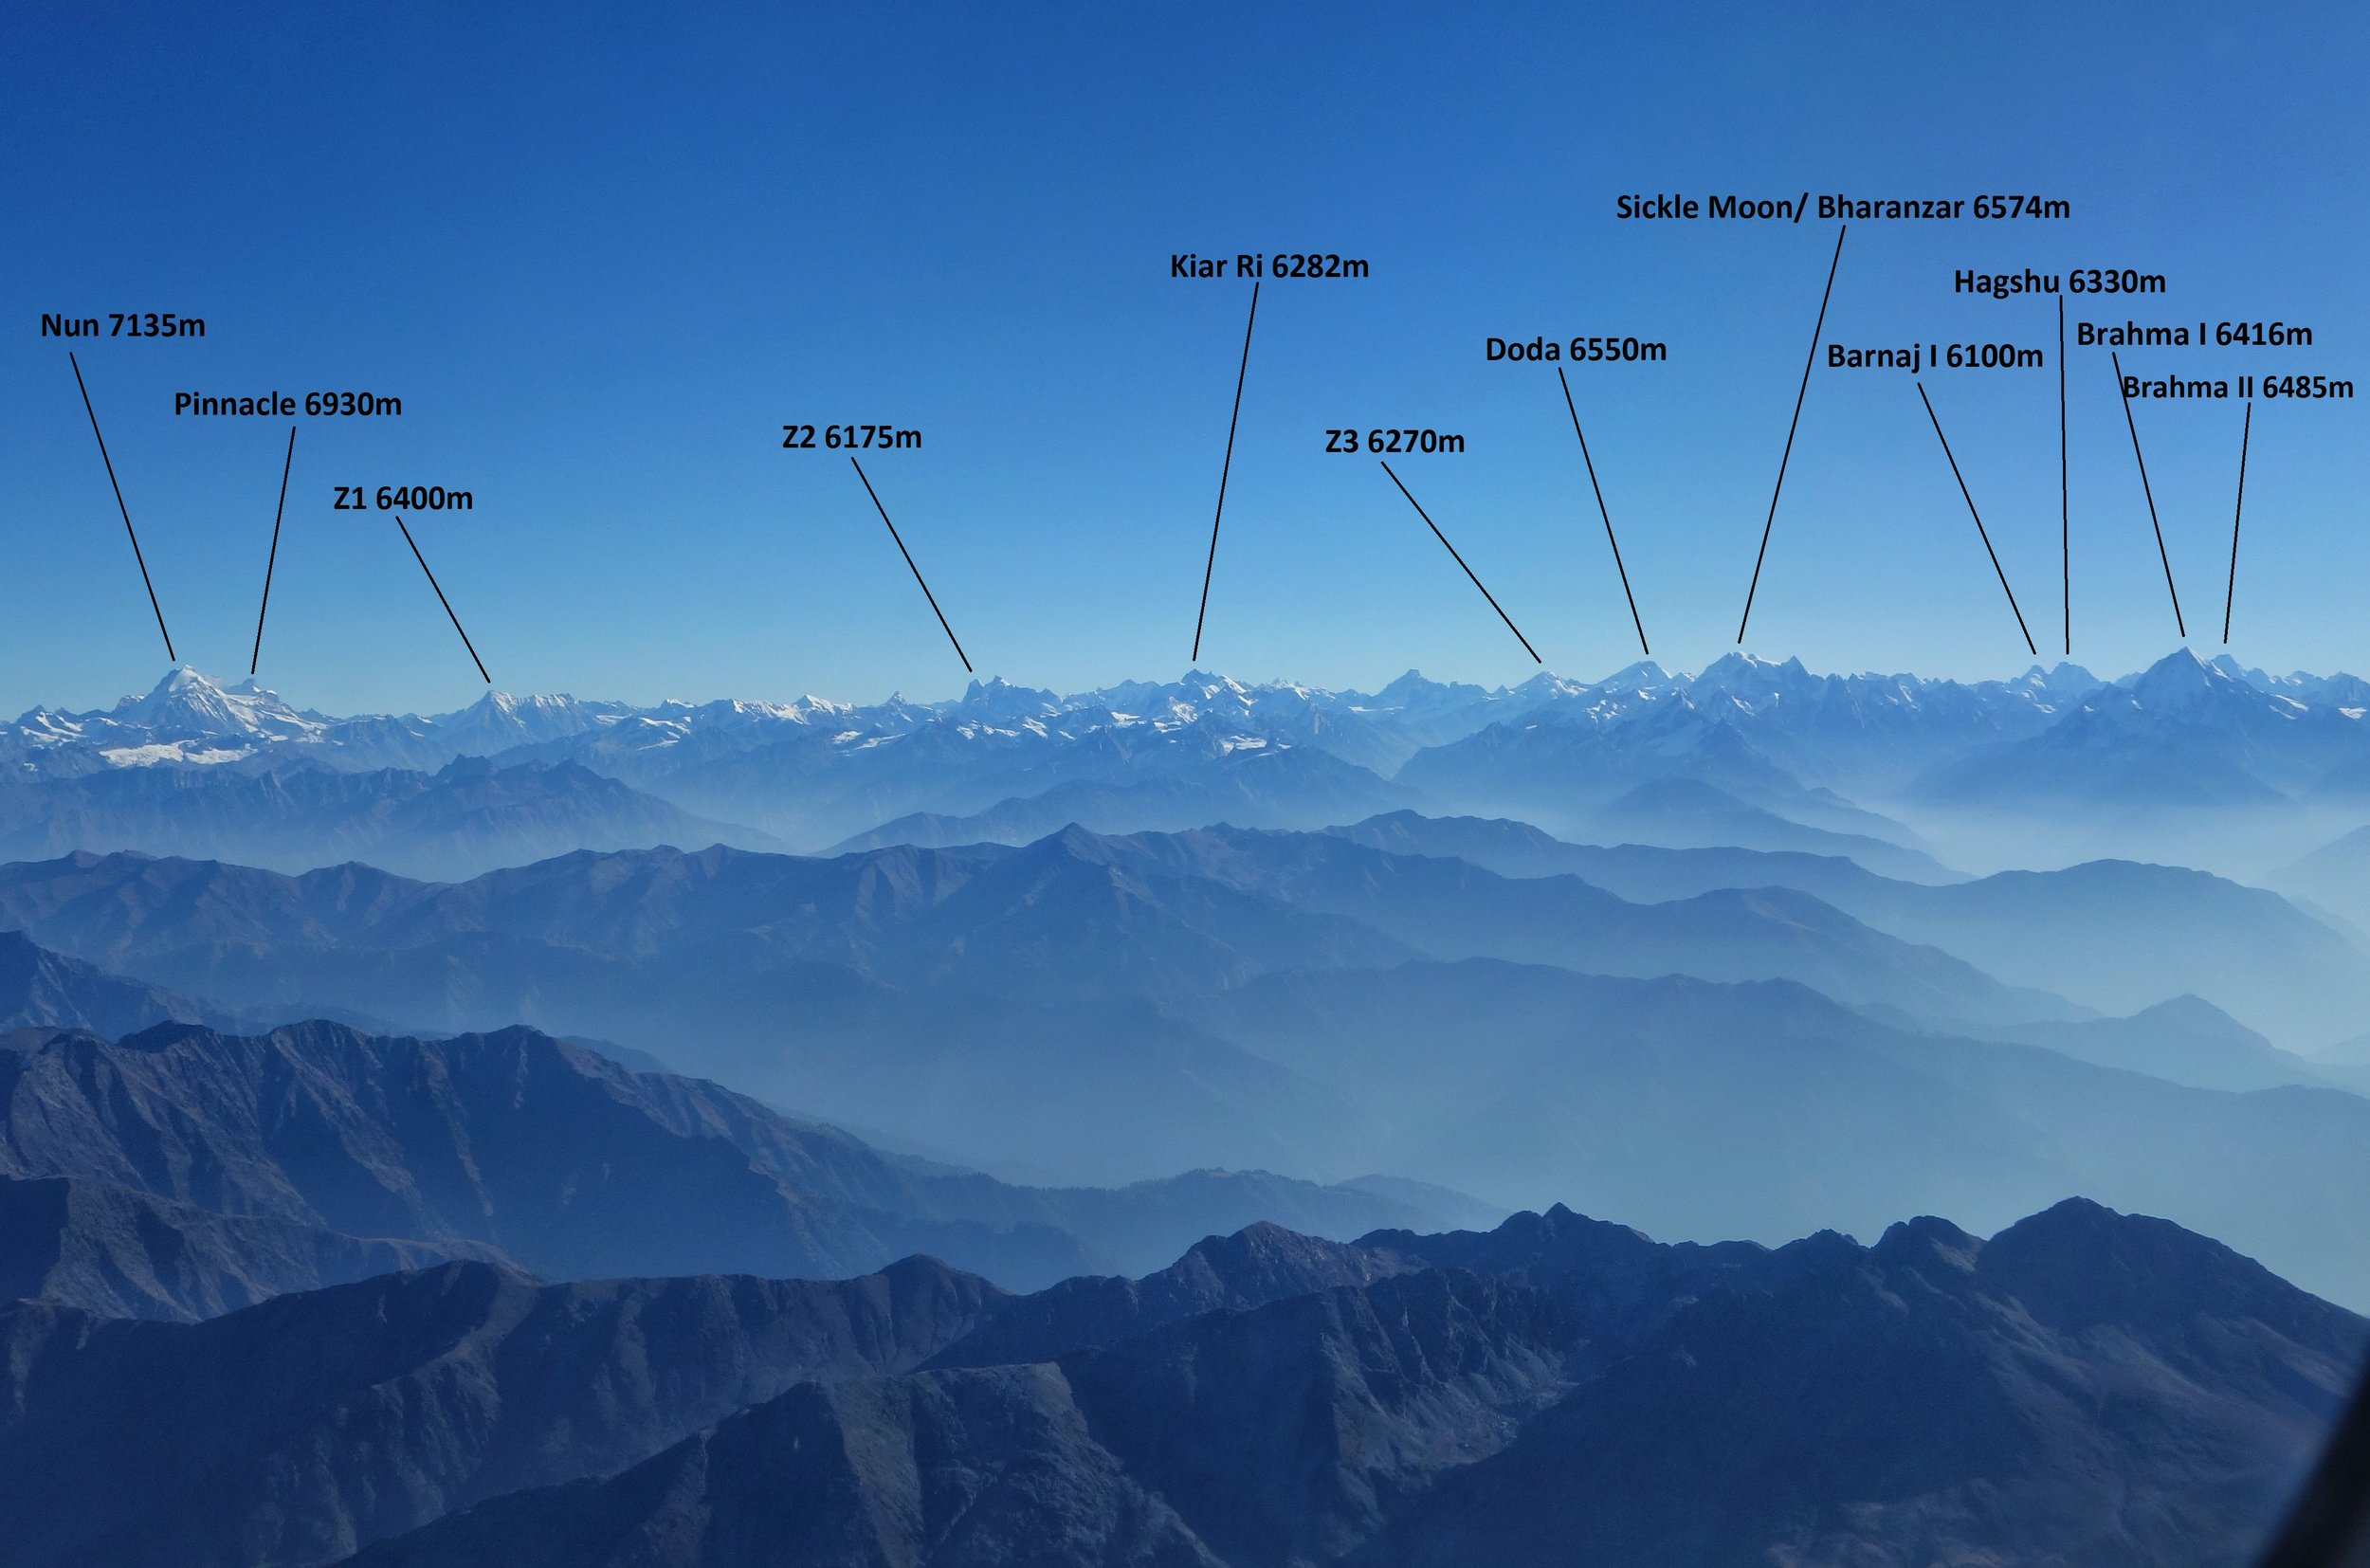 An attempt at labeling some Peaks on the Great Himalayan Range from the enigmatic Peaks of the Kishtwar Himalayas to the giant Twins of Suru / Zanskar, the Nun Kun, the first  #seventhosuanders after Kamet and before the Range ends at the Nanga Parbat Massif. Pic taken while flying over the Pir Panjals and about to get over Kashmir Division. Ladakh Division on the left and Jammu Division on the right.